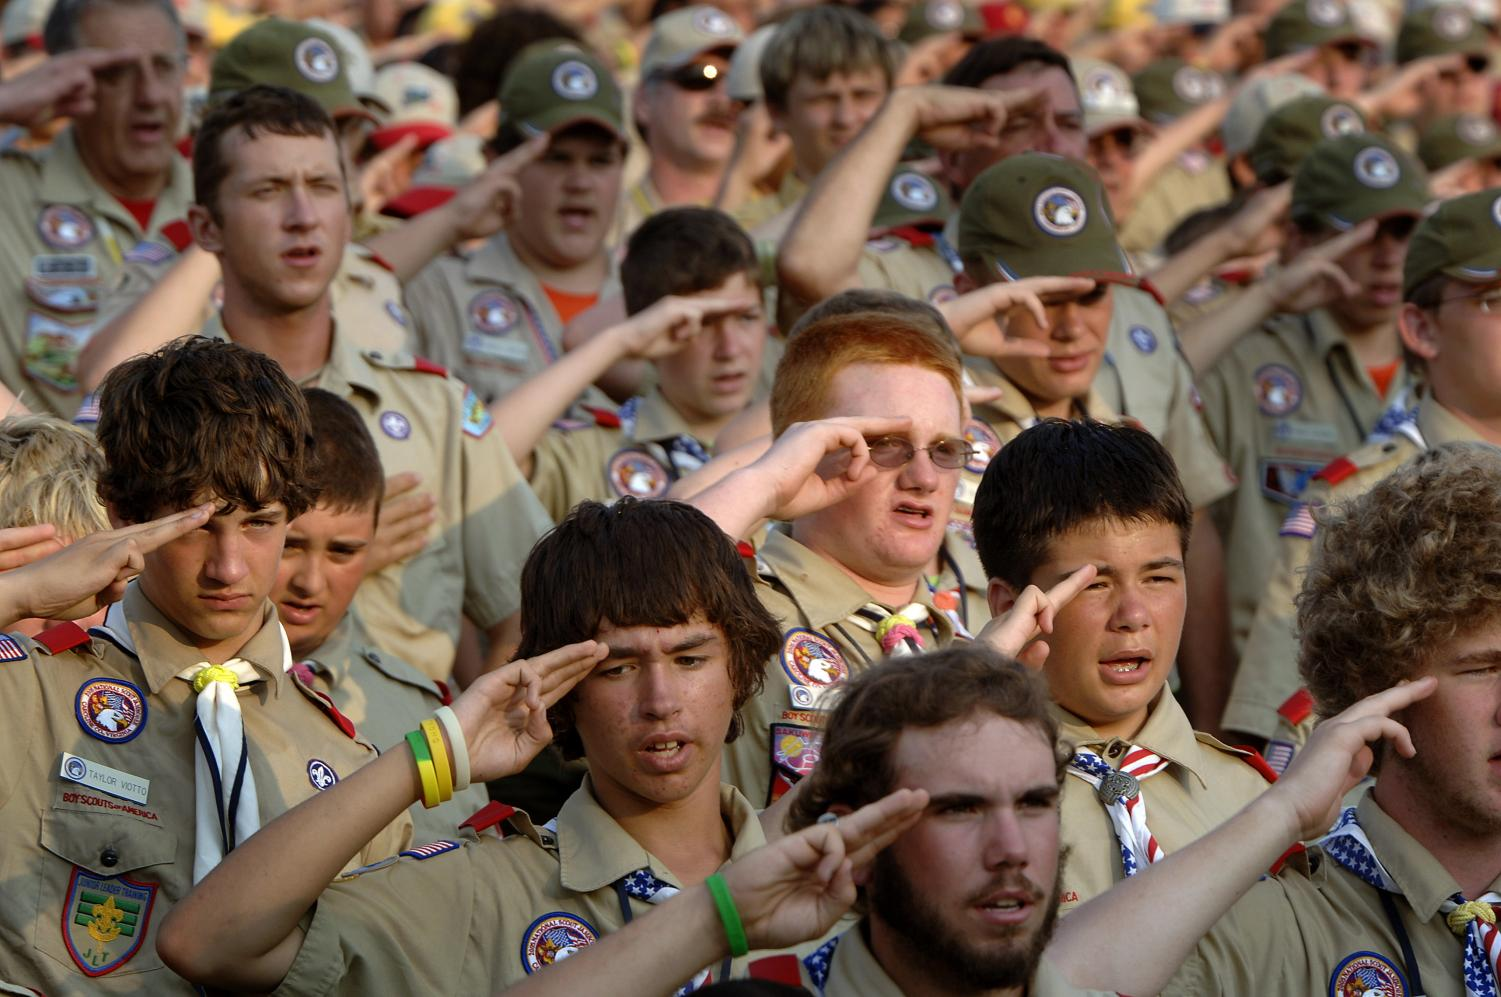 The Boy Scouts of America announced in the fall that girls could join the organization.